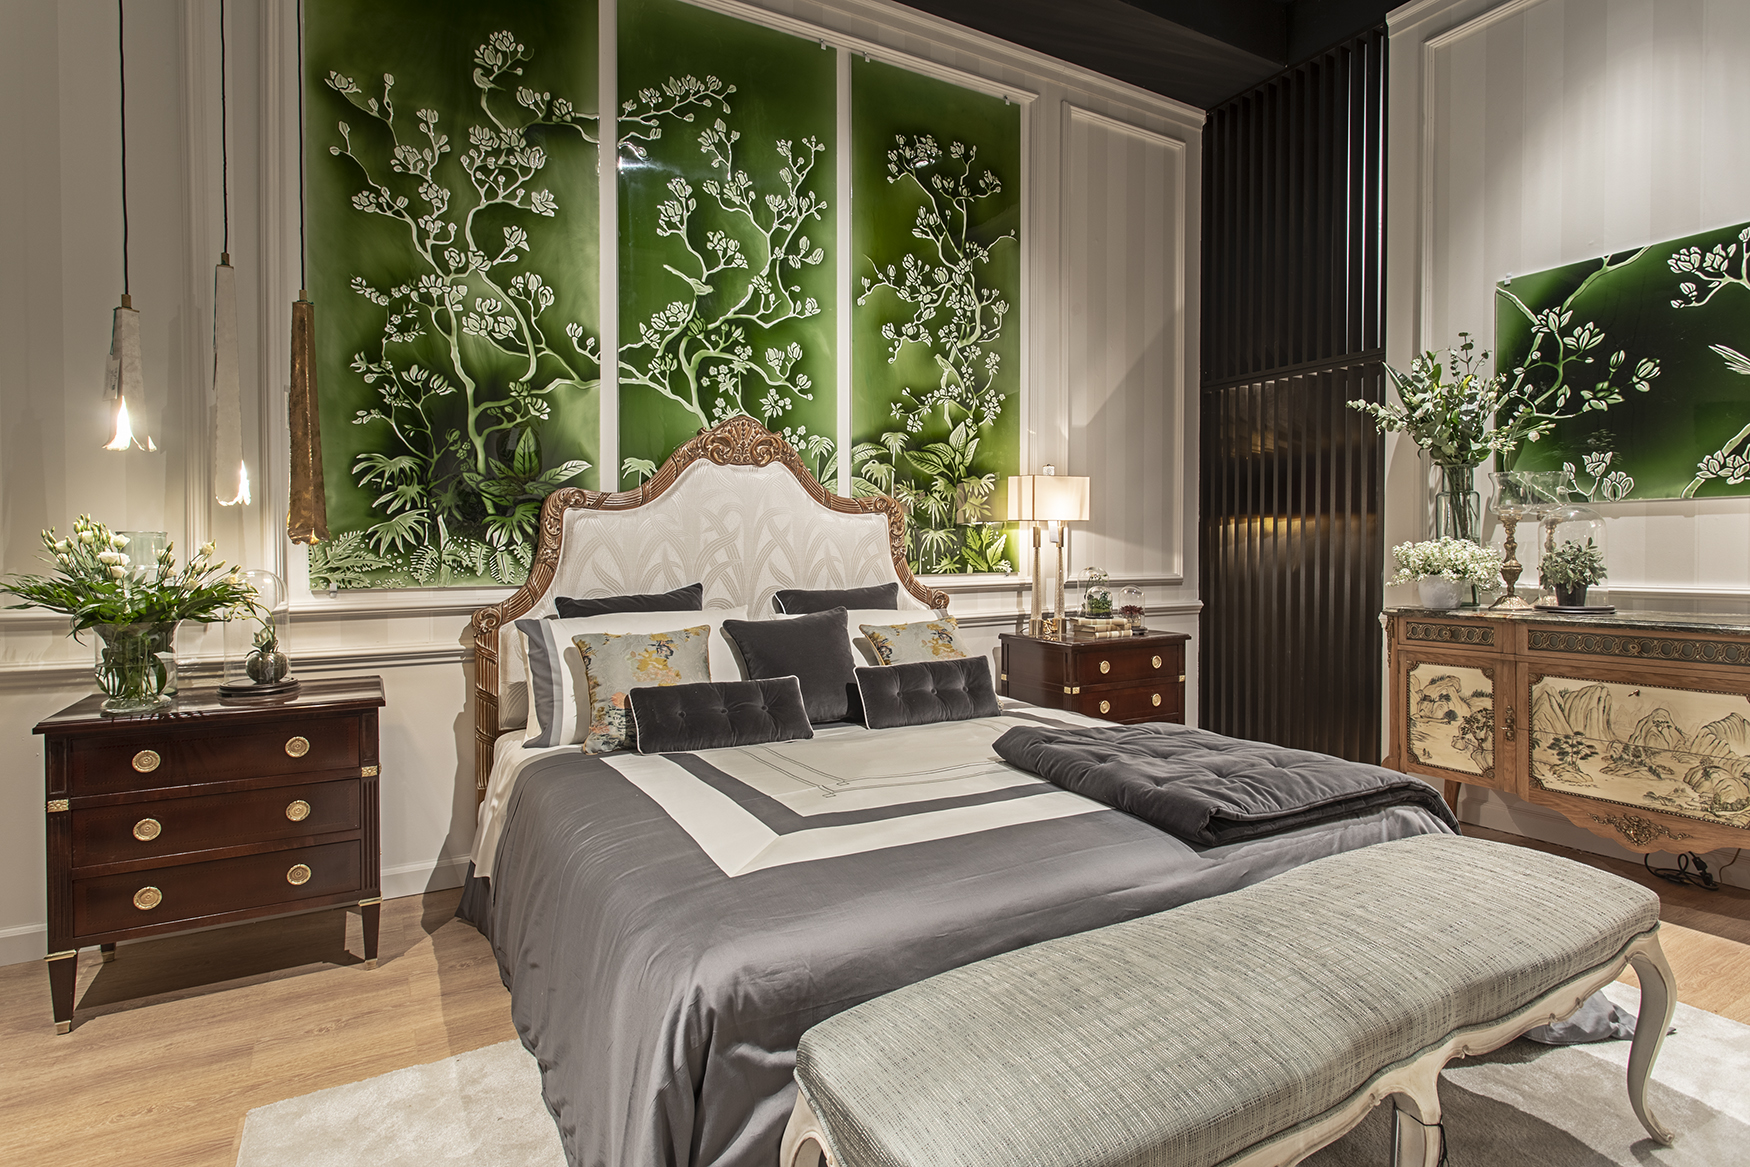 Let's talk about the design heritage by SALDA - stylish bedroom.jpg